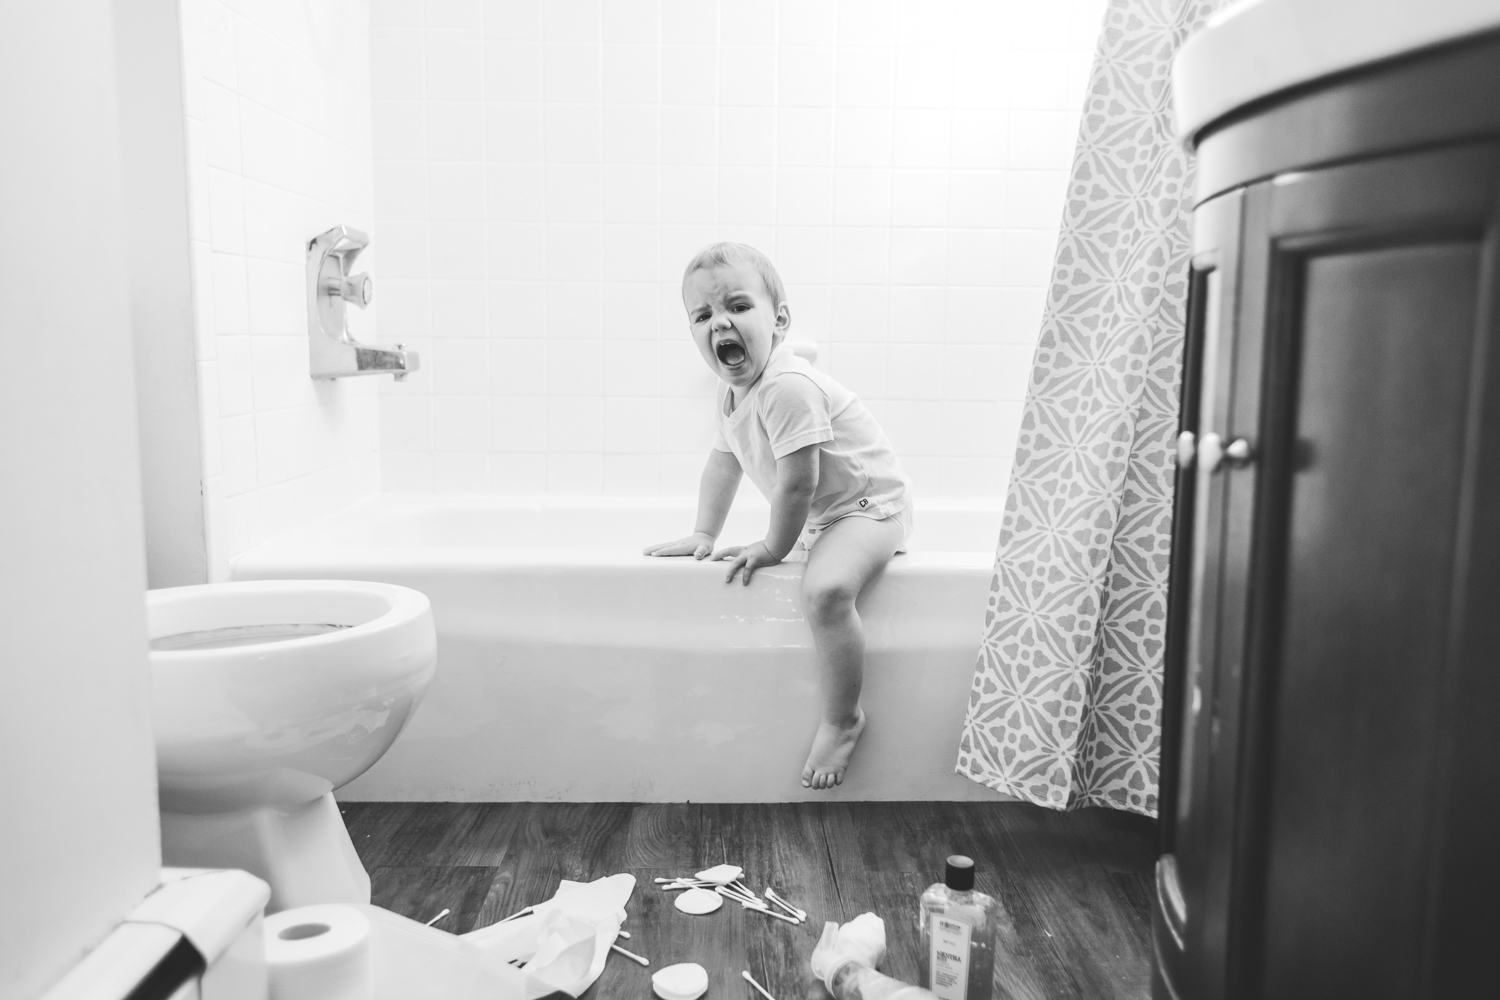 6/366 | The mess in the bathroom was seriously stressing him out.